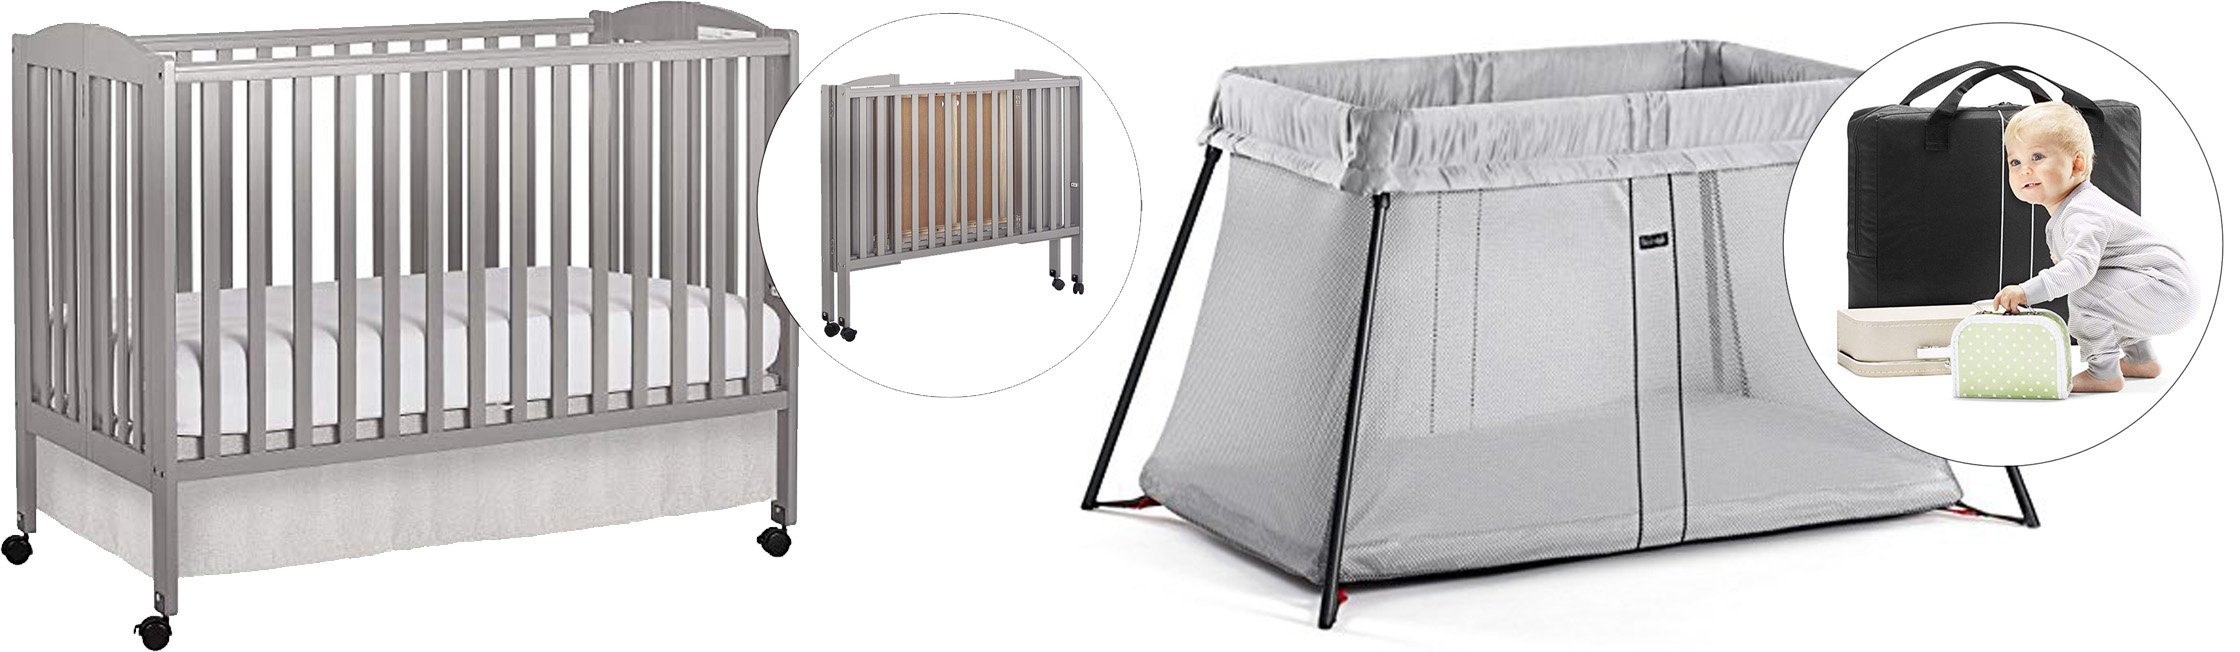 Bast Rated Portable Cribs Baby S Little Place